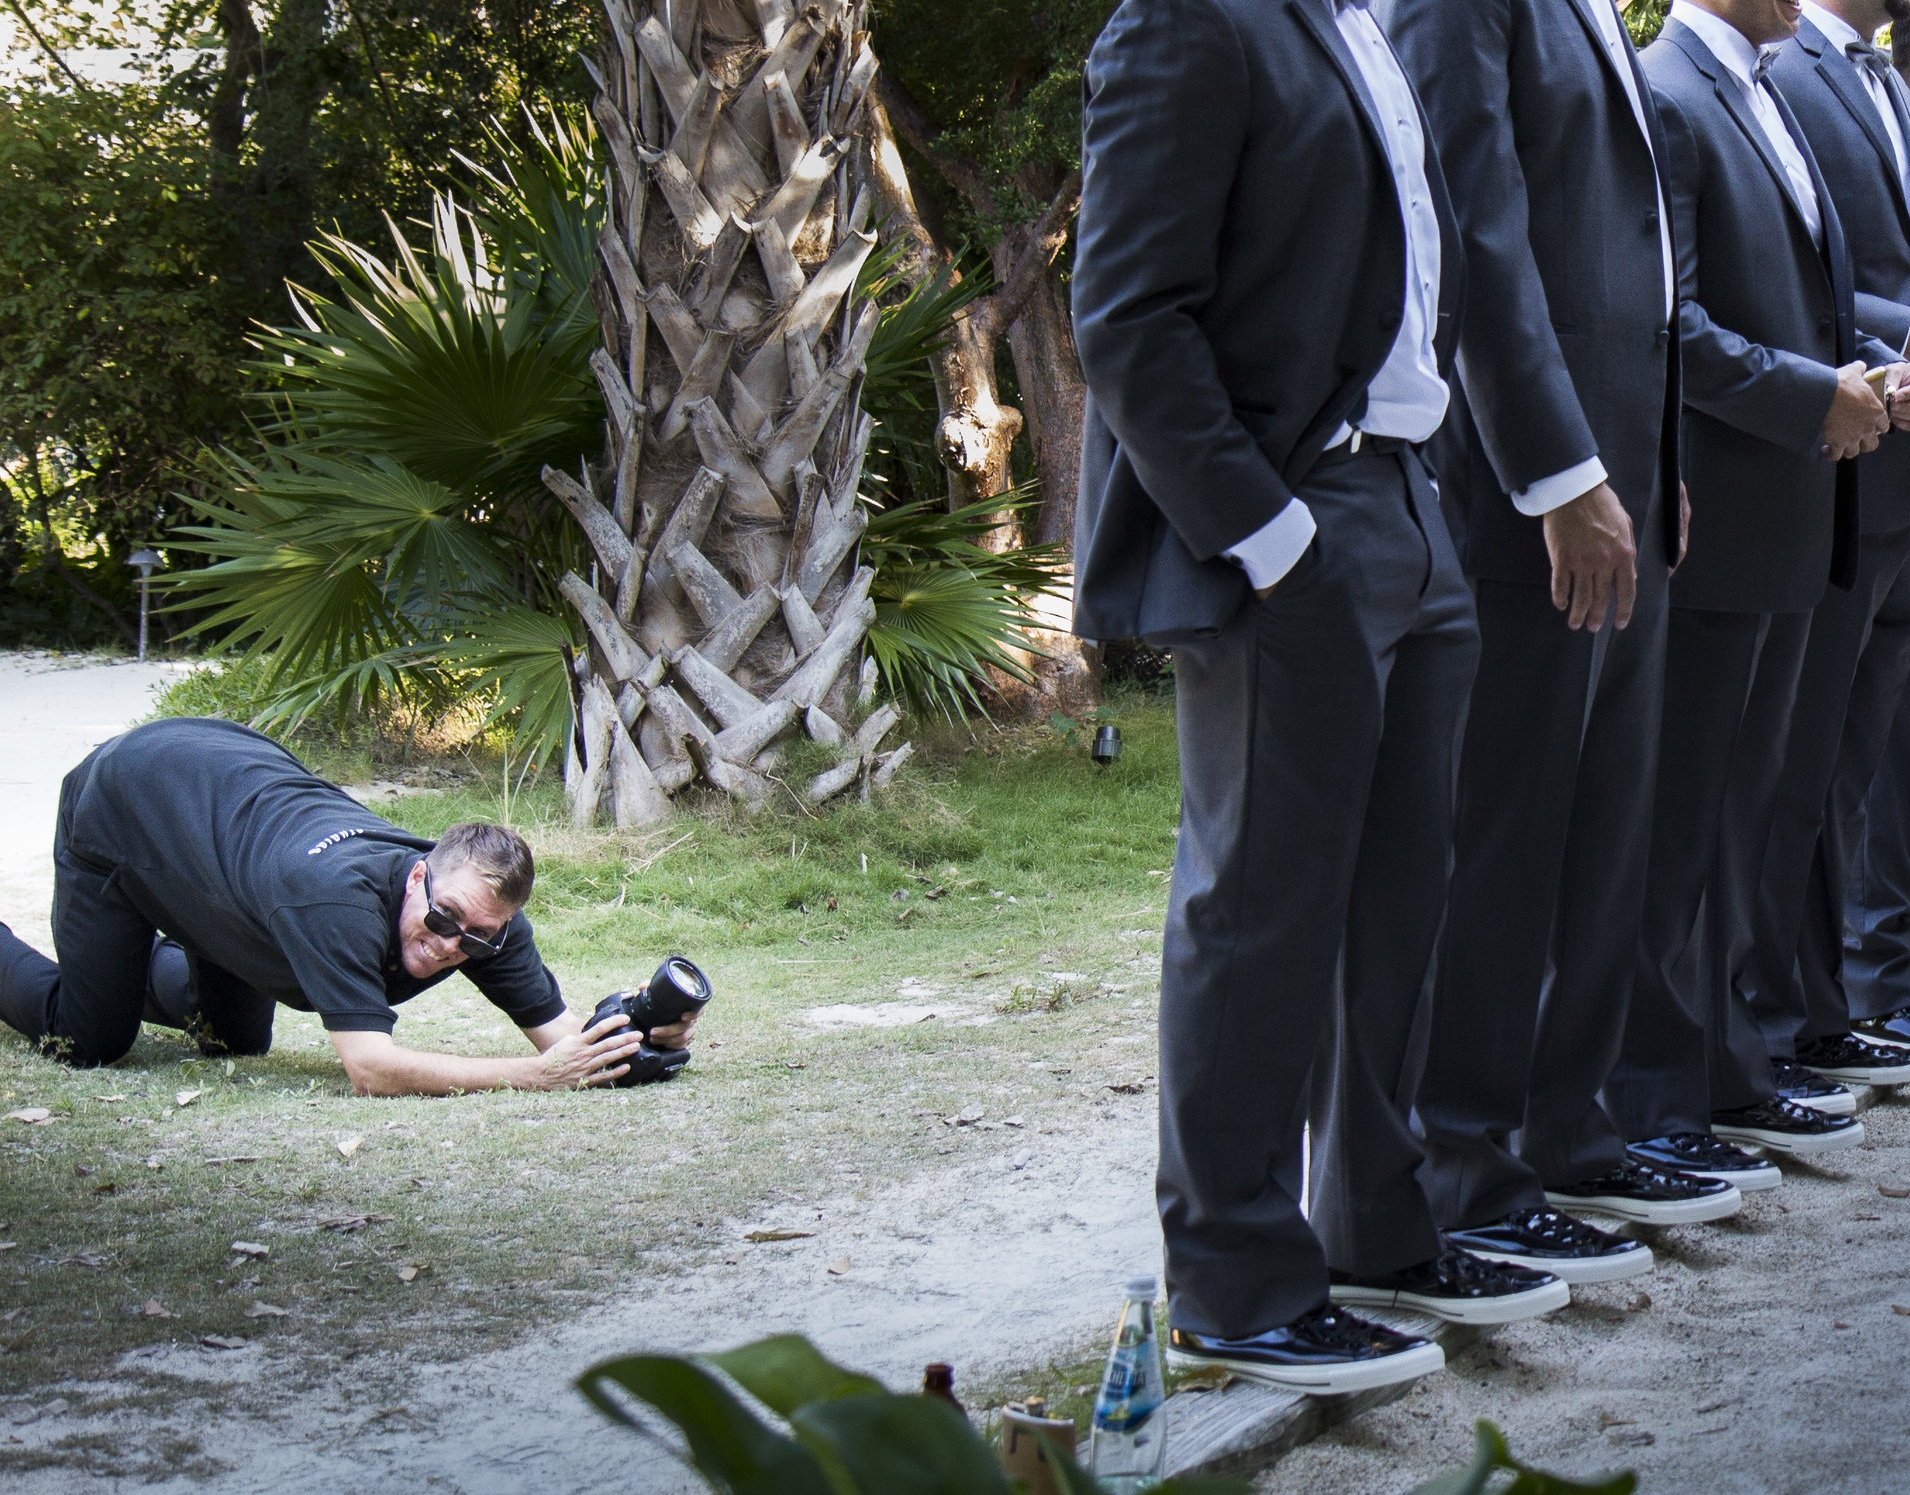 Videographer-Matt-Dockery-Gets-Low-Angle-Shot-During-Florida-Keys-Wedding-With-Photographer-Karrie-Porter.jpg